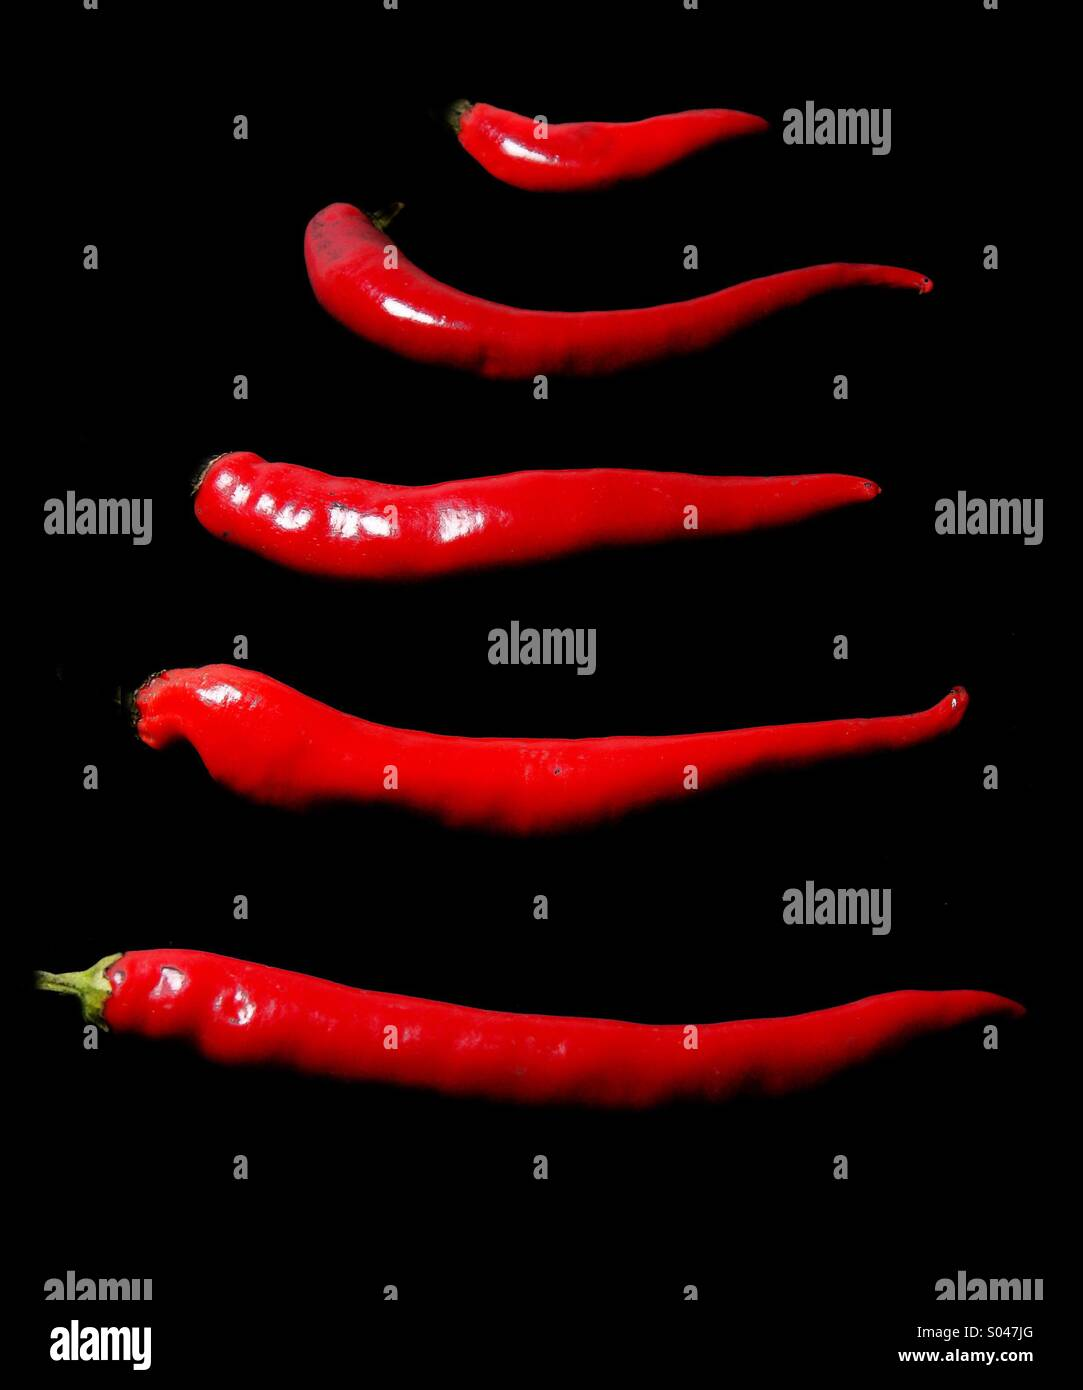 Red peppers - Stock Image